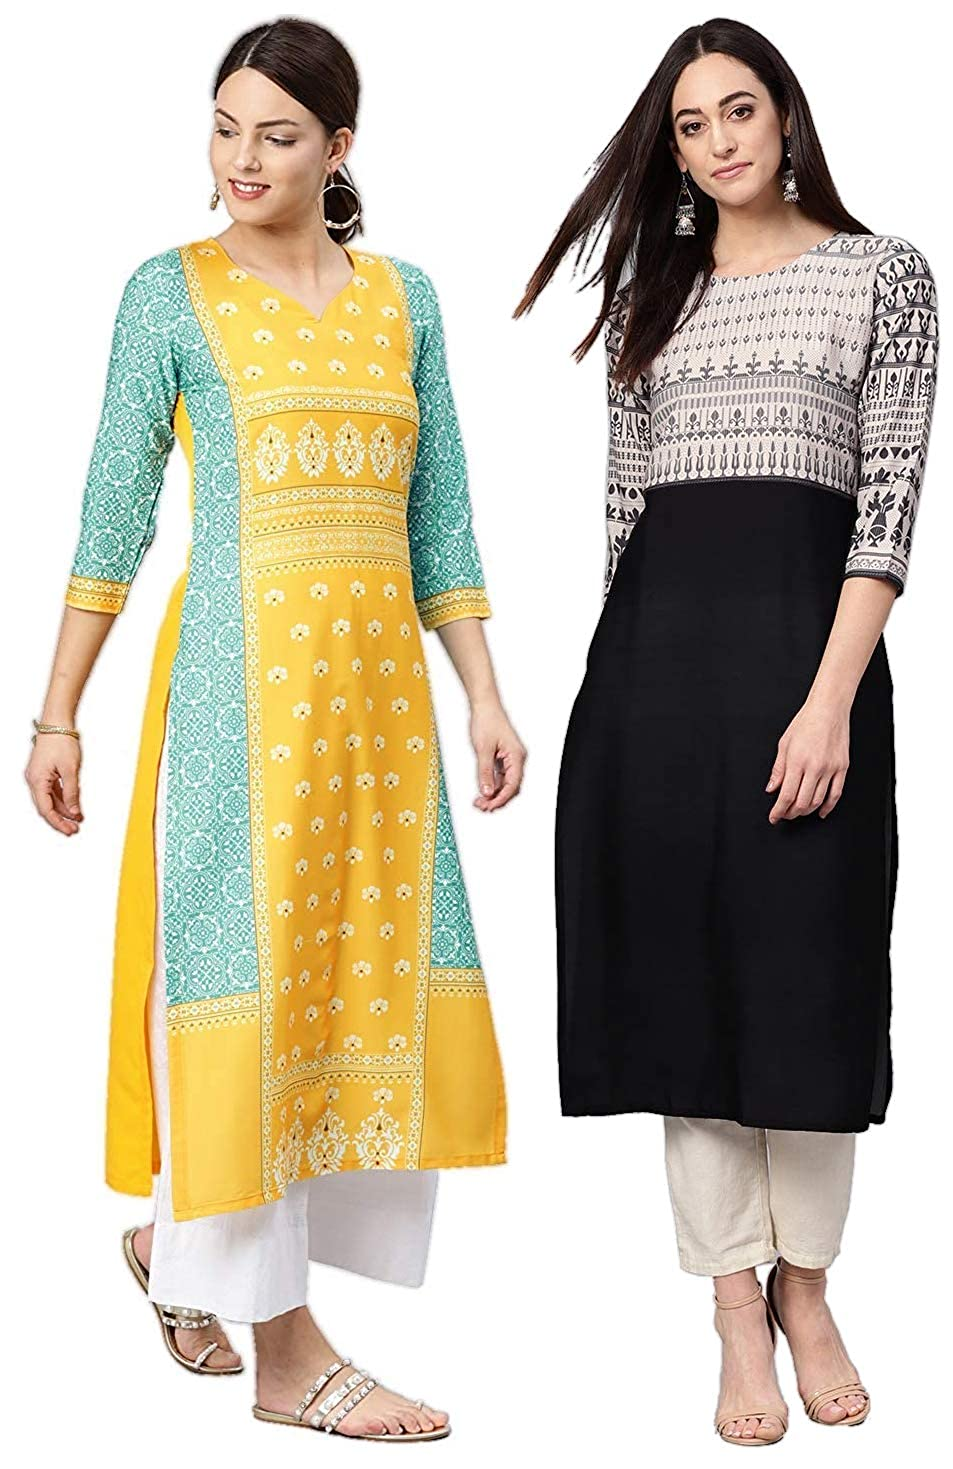 Girlistan - How To Select The Perfect Kurtis For The Occasion